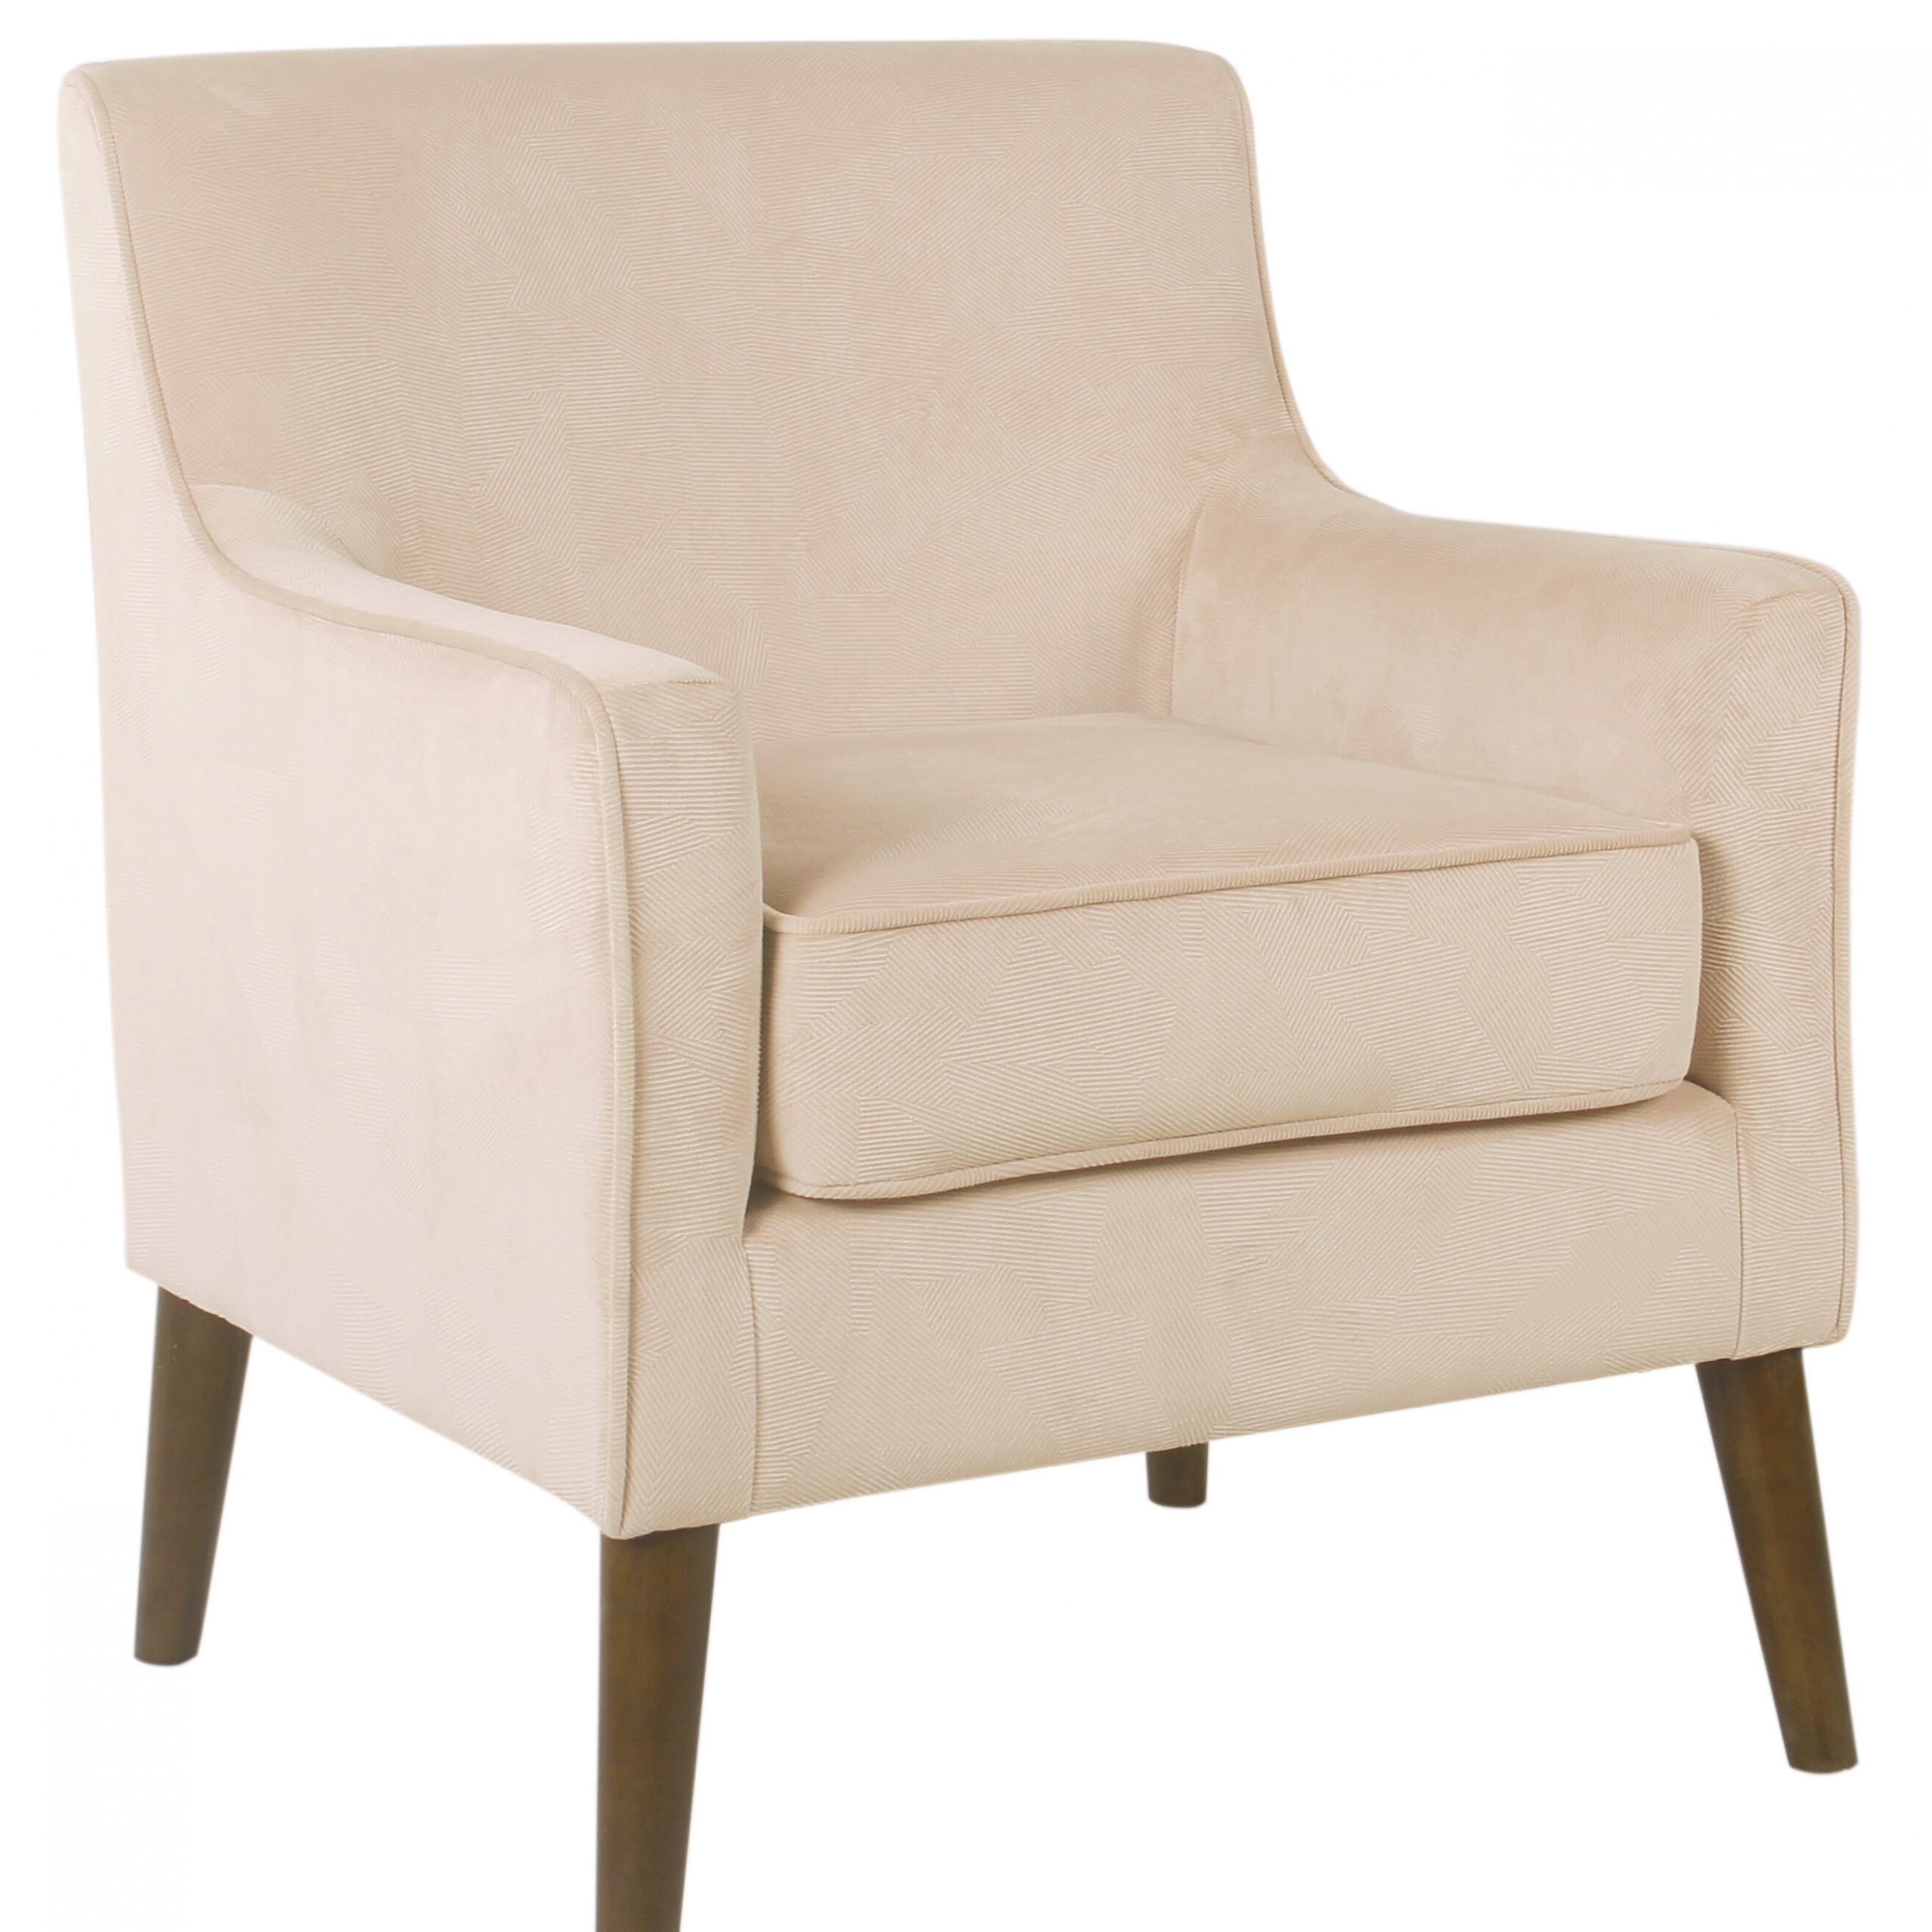 """Myia 26"""" W Polyester Armchair Within Leia Polyester Armchairs (View 12 of 15)"""